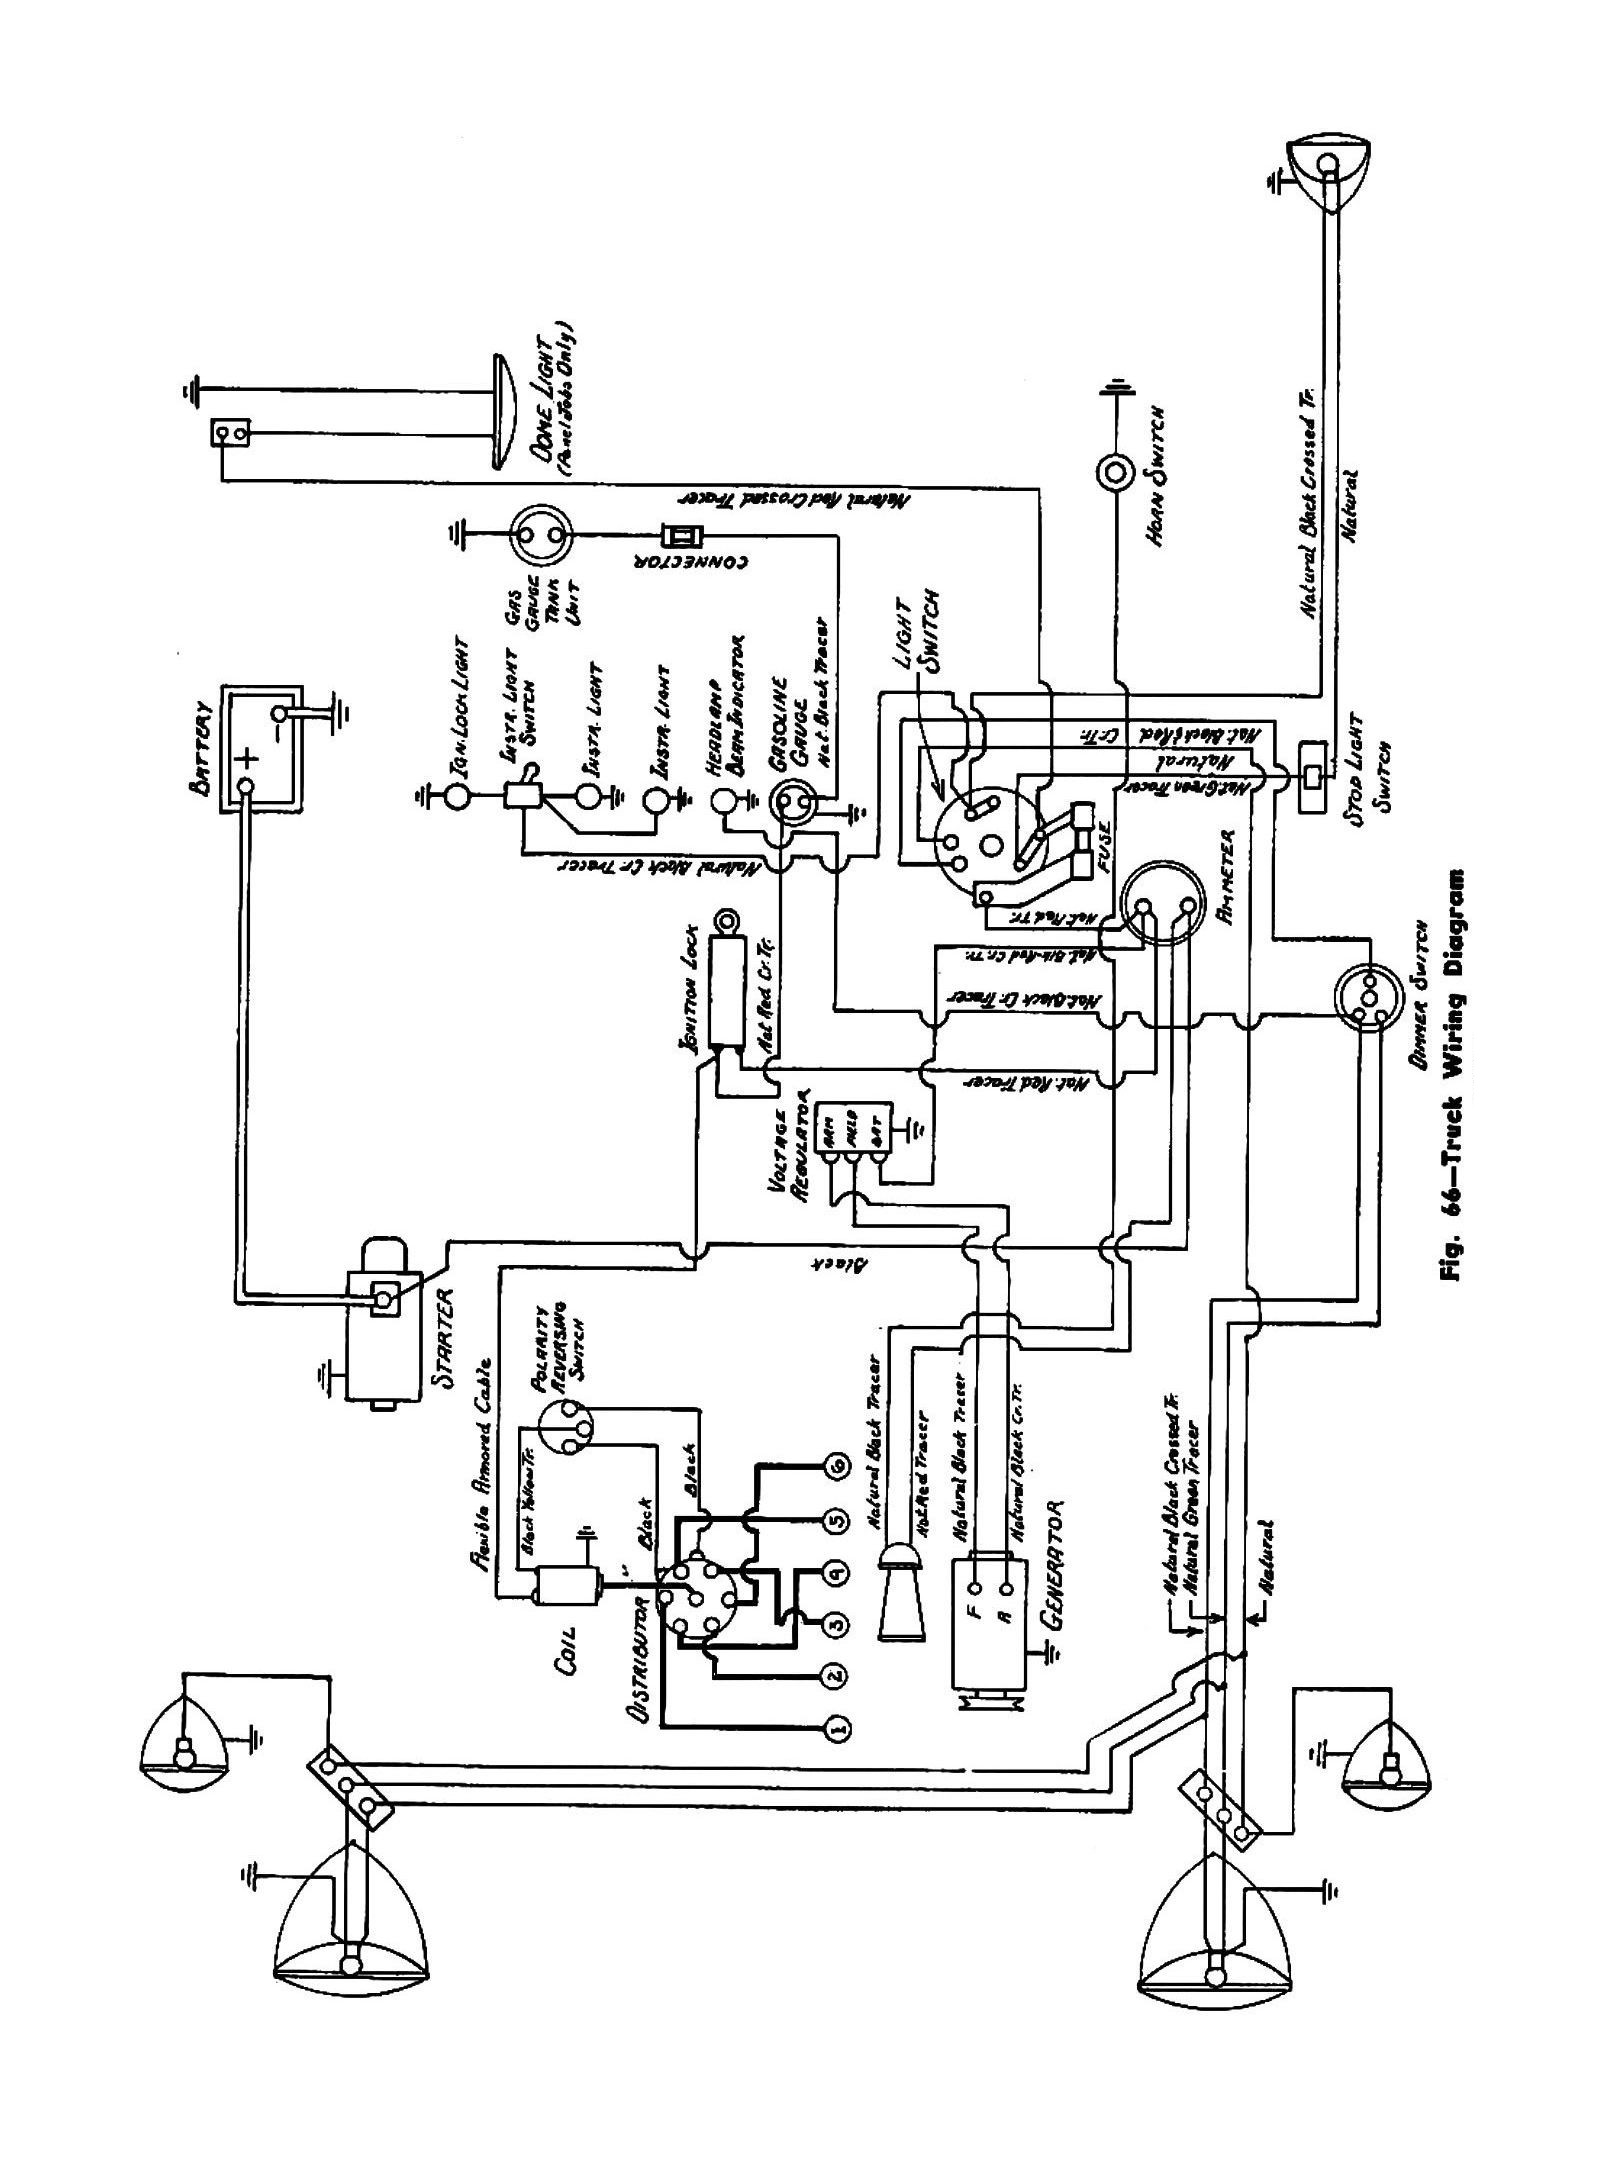 45truck chevy wiring diagrams international truck wiring diagram at gsmx.co